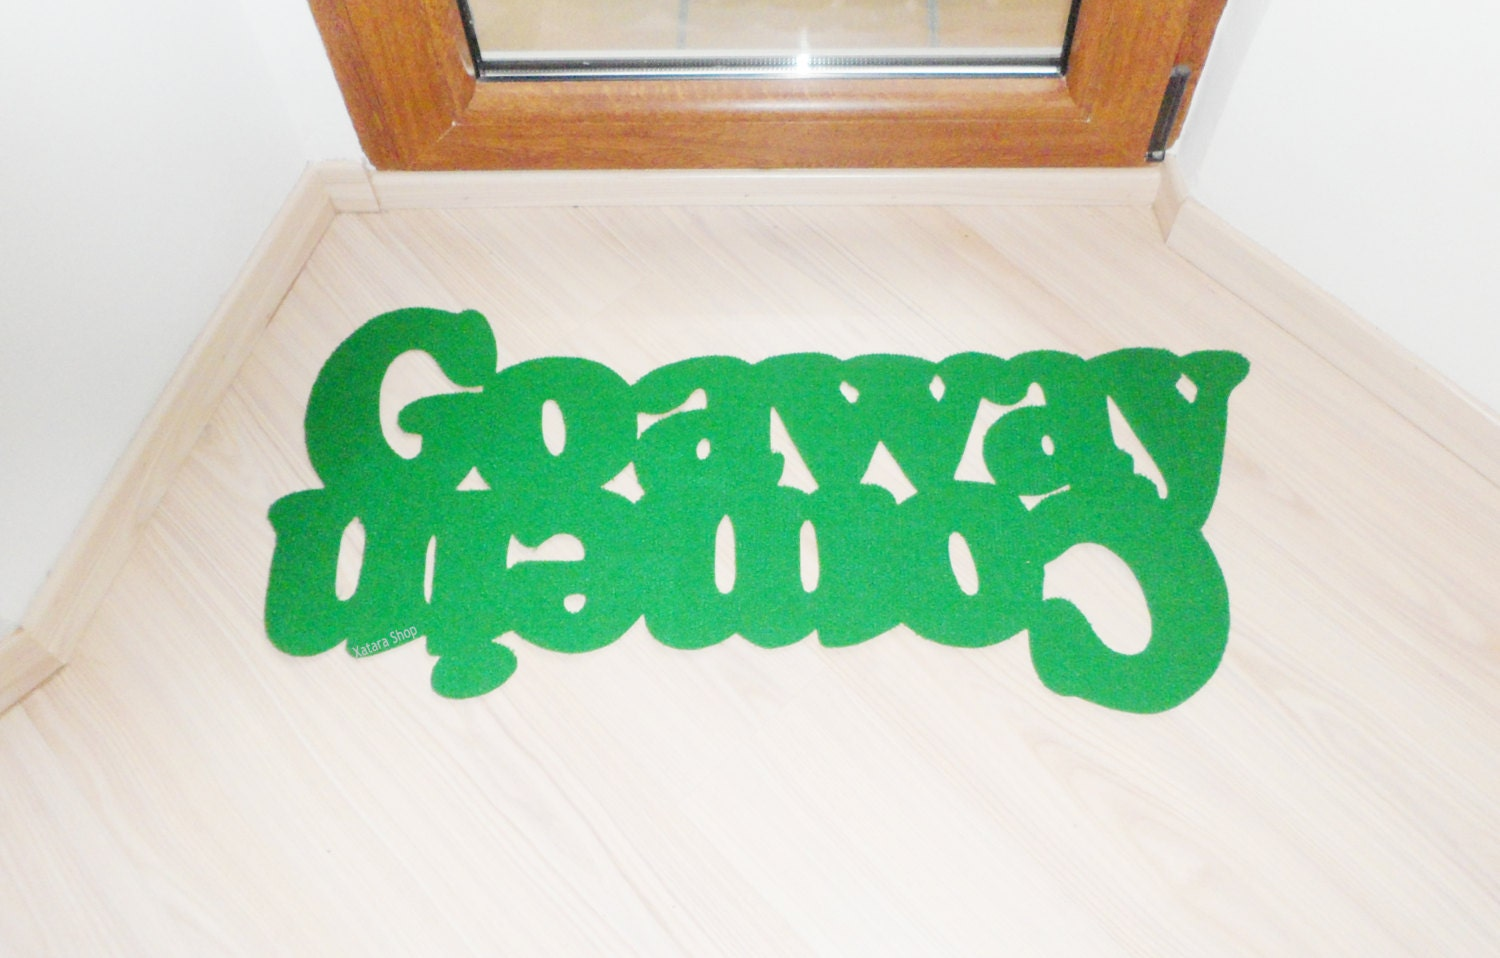 Double Message Floor Mat Come In Go Away